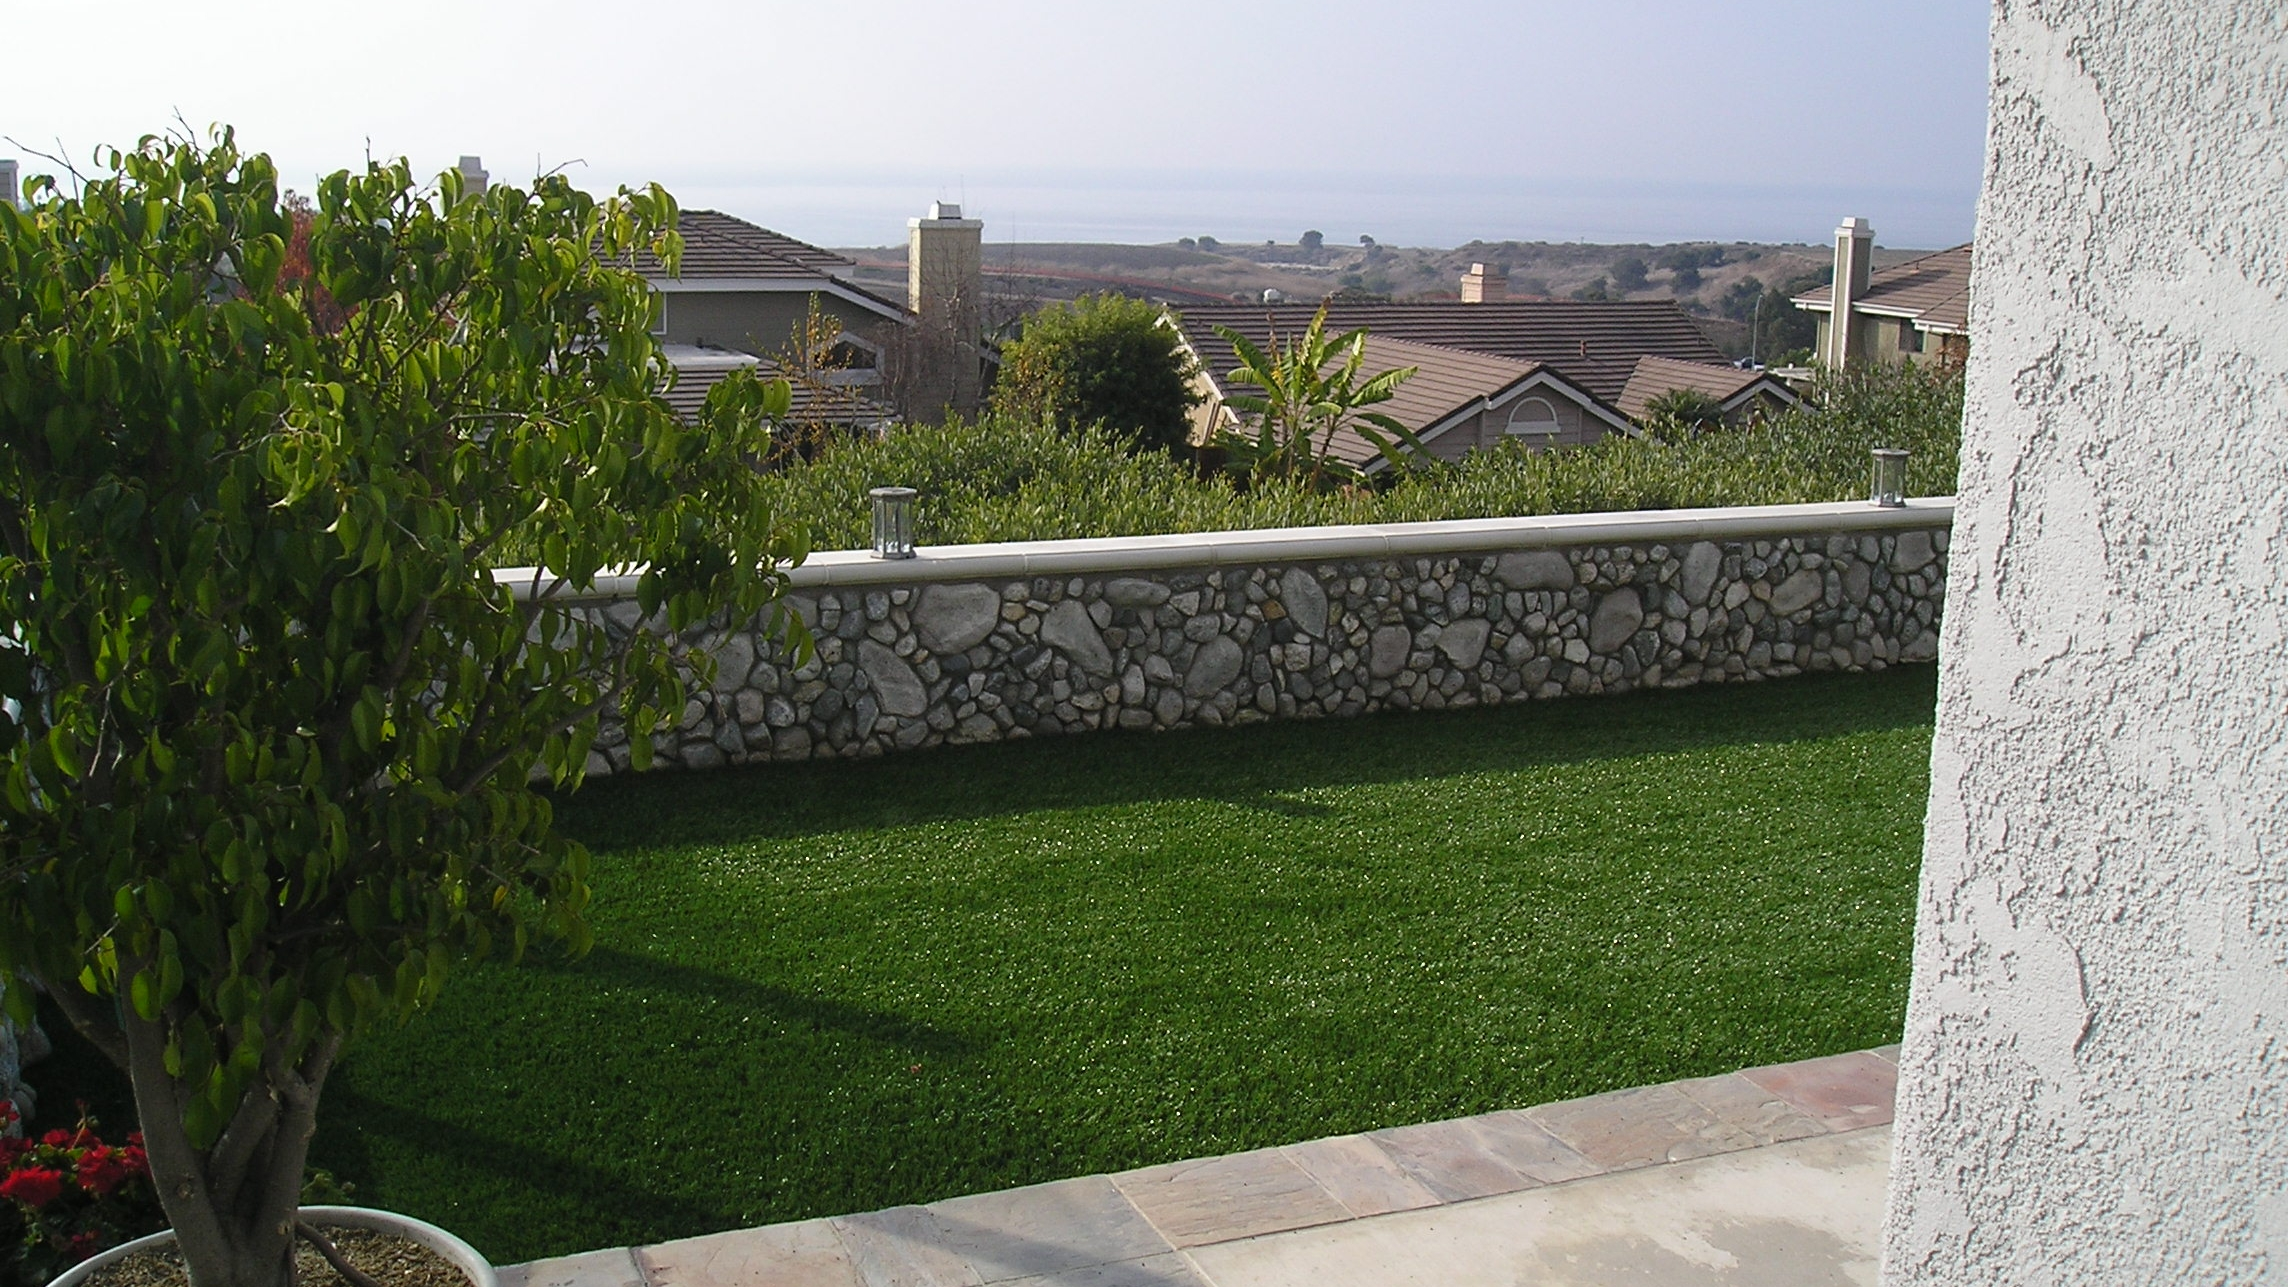 Premium M Blade-60 artificial turf,synthetic turf,artificial turf installation,how to install artificial turf,used artificial turf